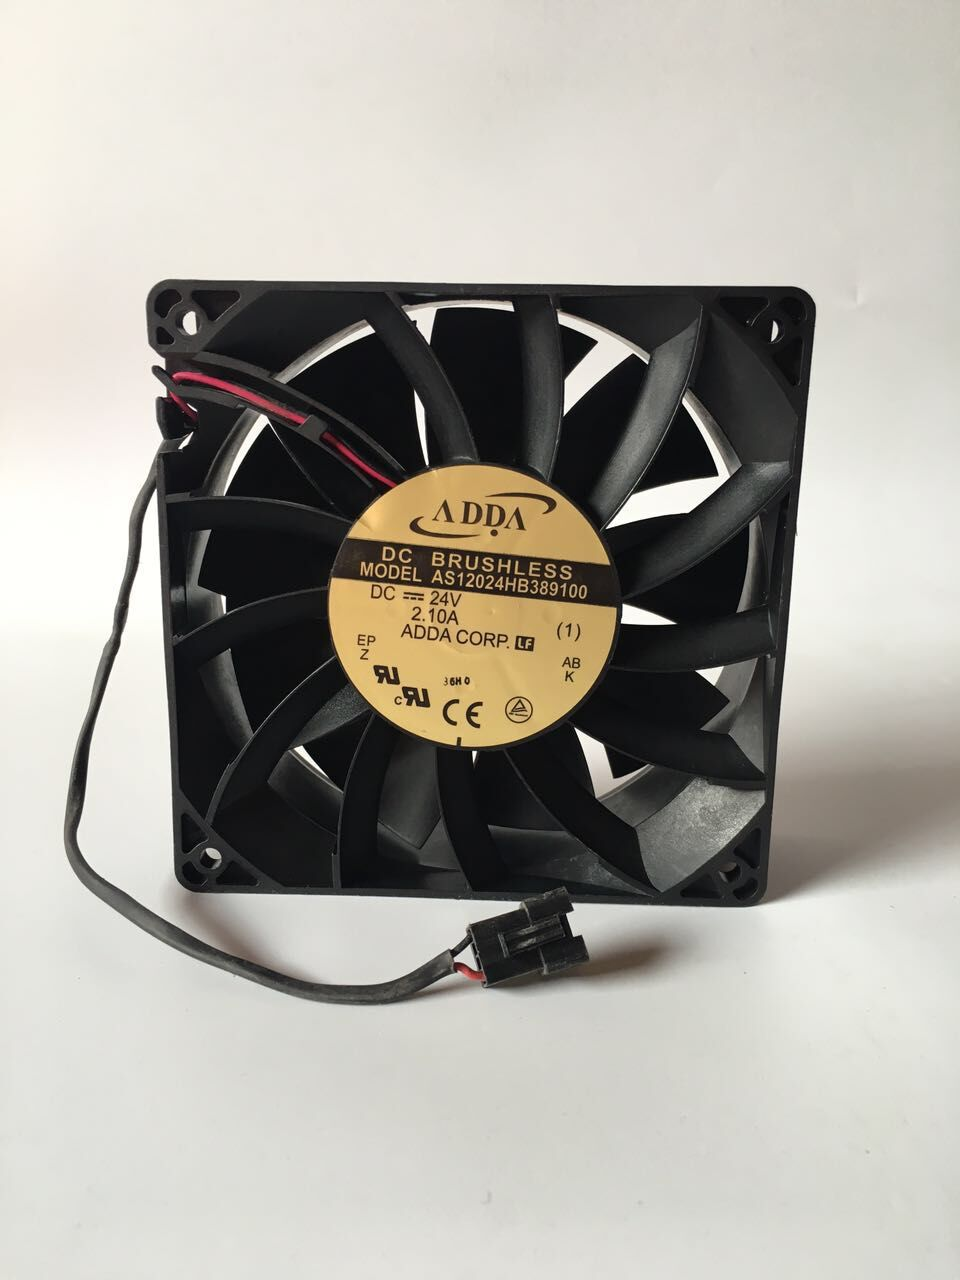 ADDA AS12024HB389100 DC24V 2.1A  Cooling Double Ball Fan